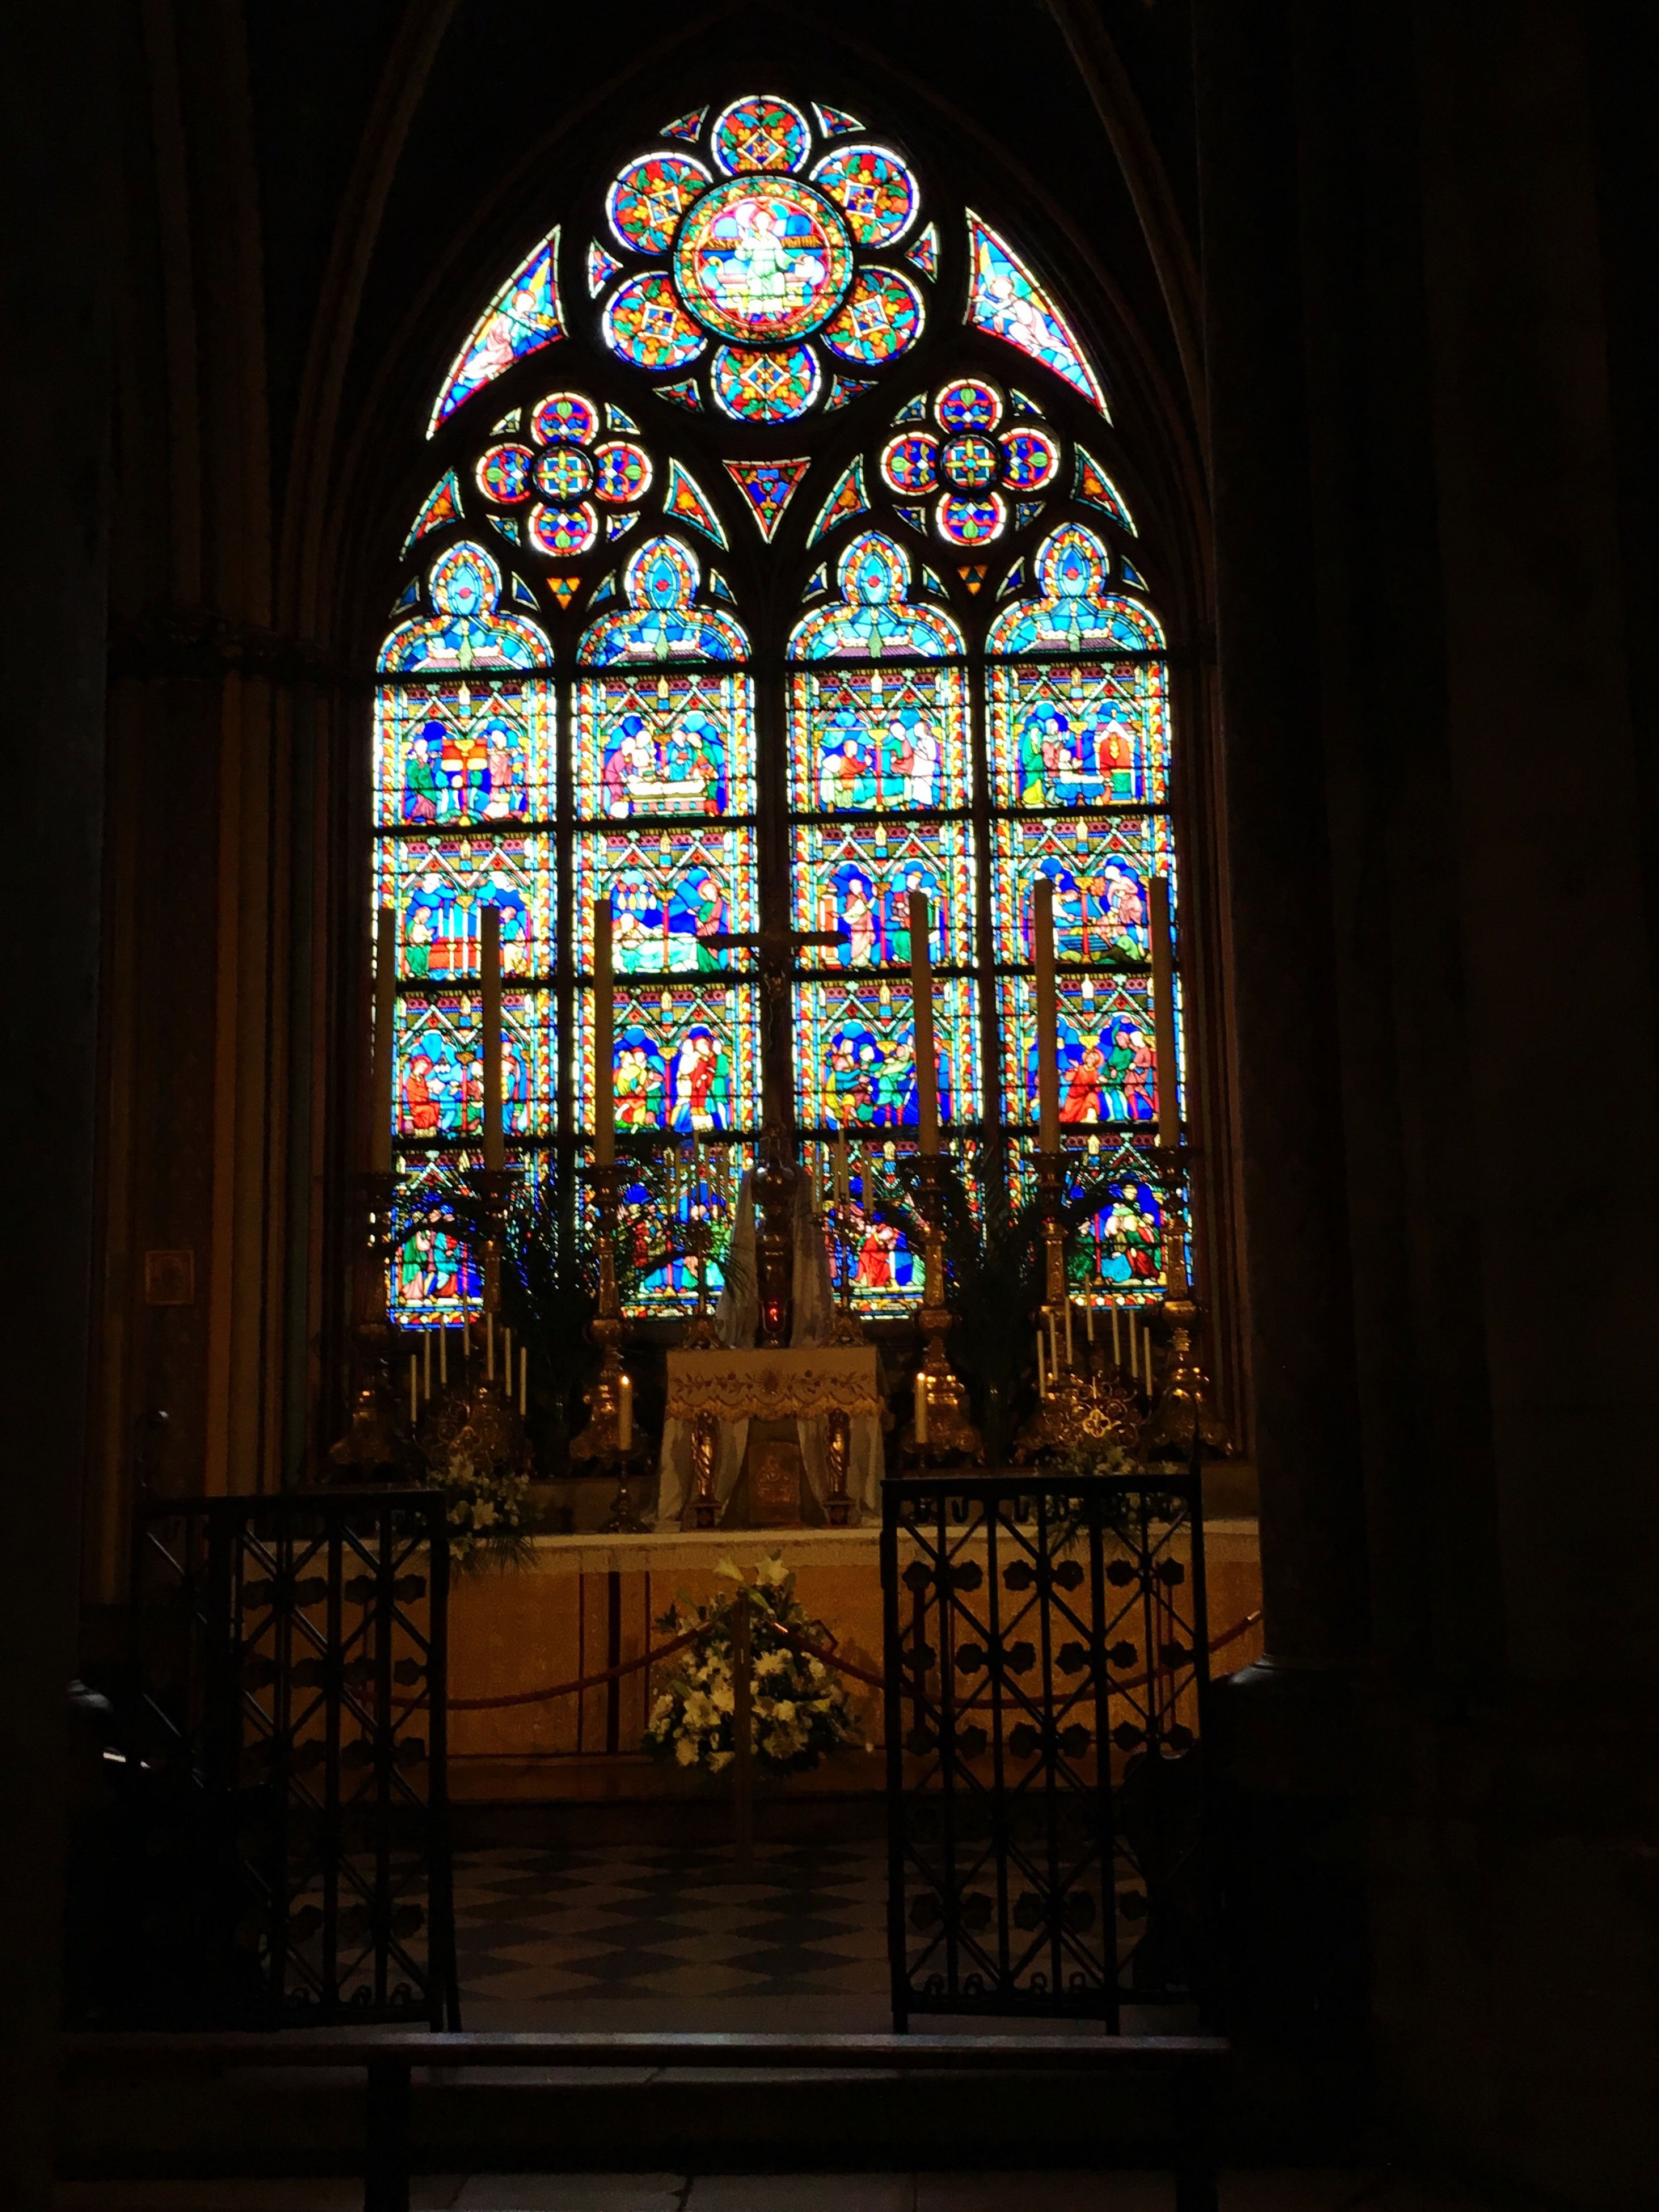 indoors, place of worship, religion, church, spirituality, stained glass, window, architecture, built structure, cathedral, arch, design, art, ornate, multi colored, glass - material, pattern, art and craft